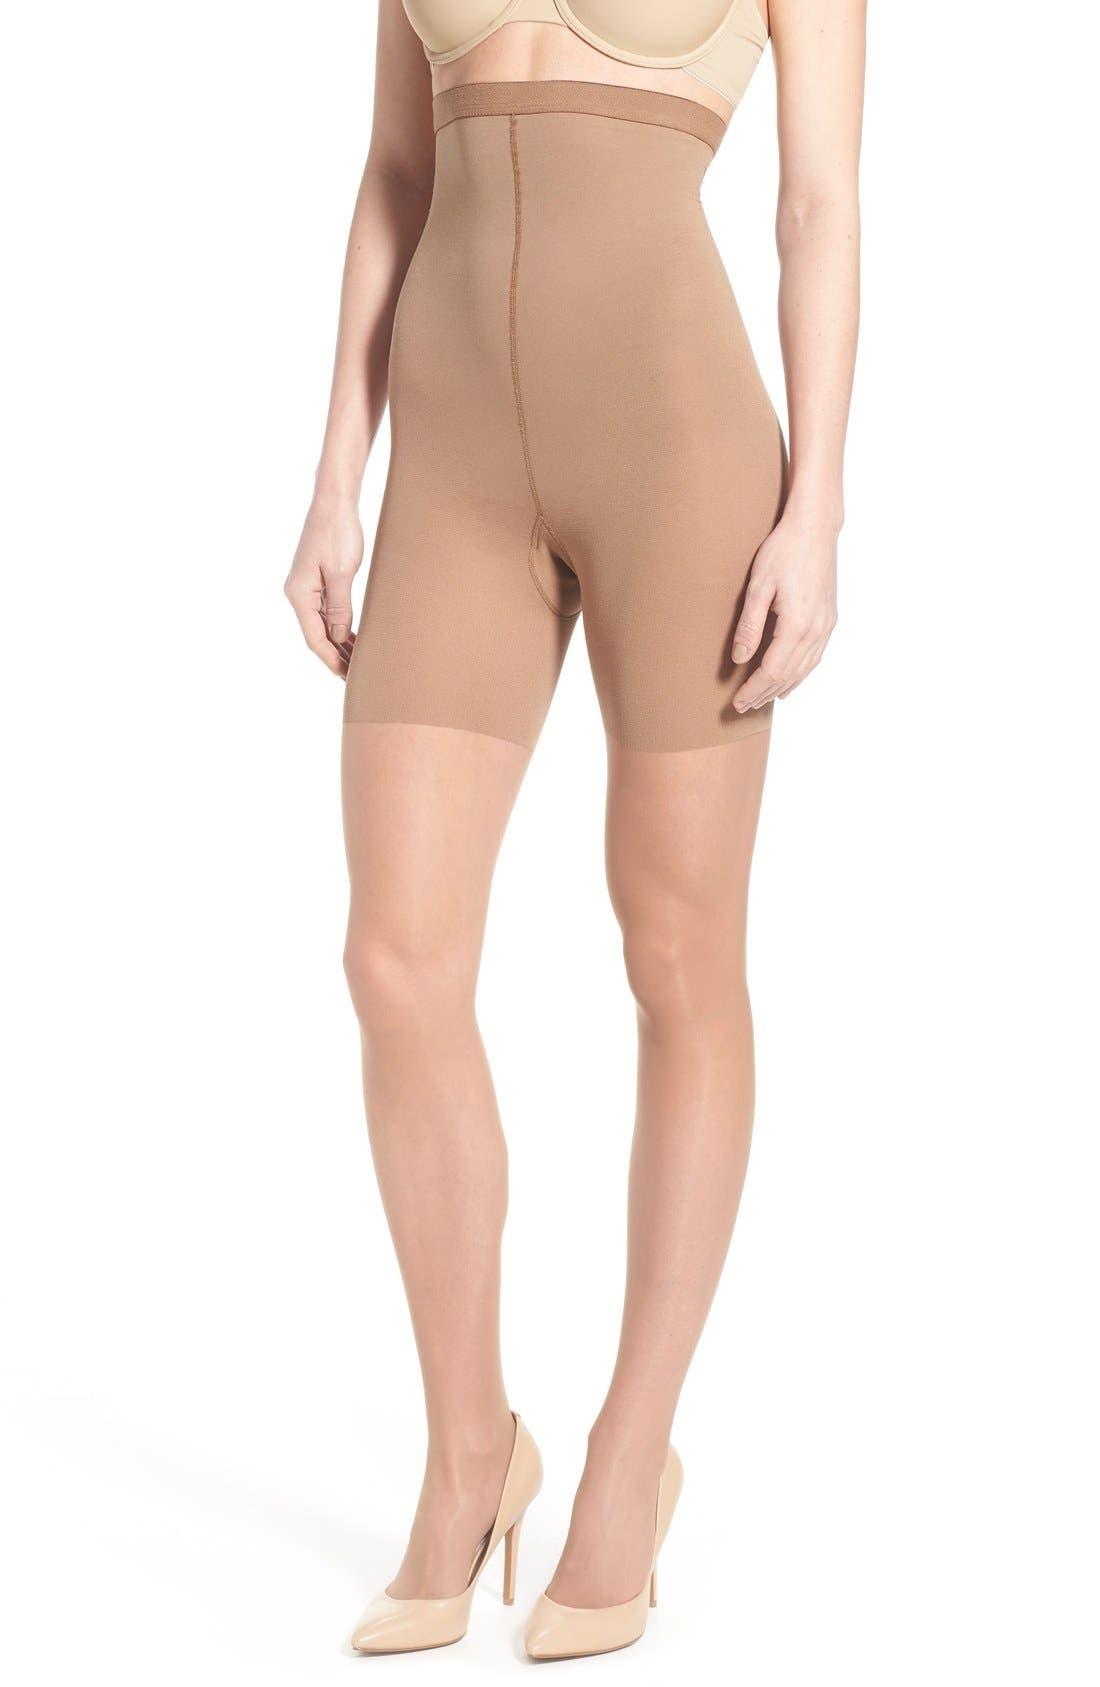 Luxe High Waist Shaping Pantyhose,                         Main,                         color, Nude 4